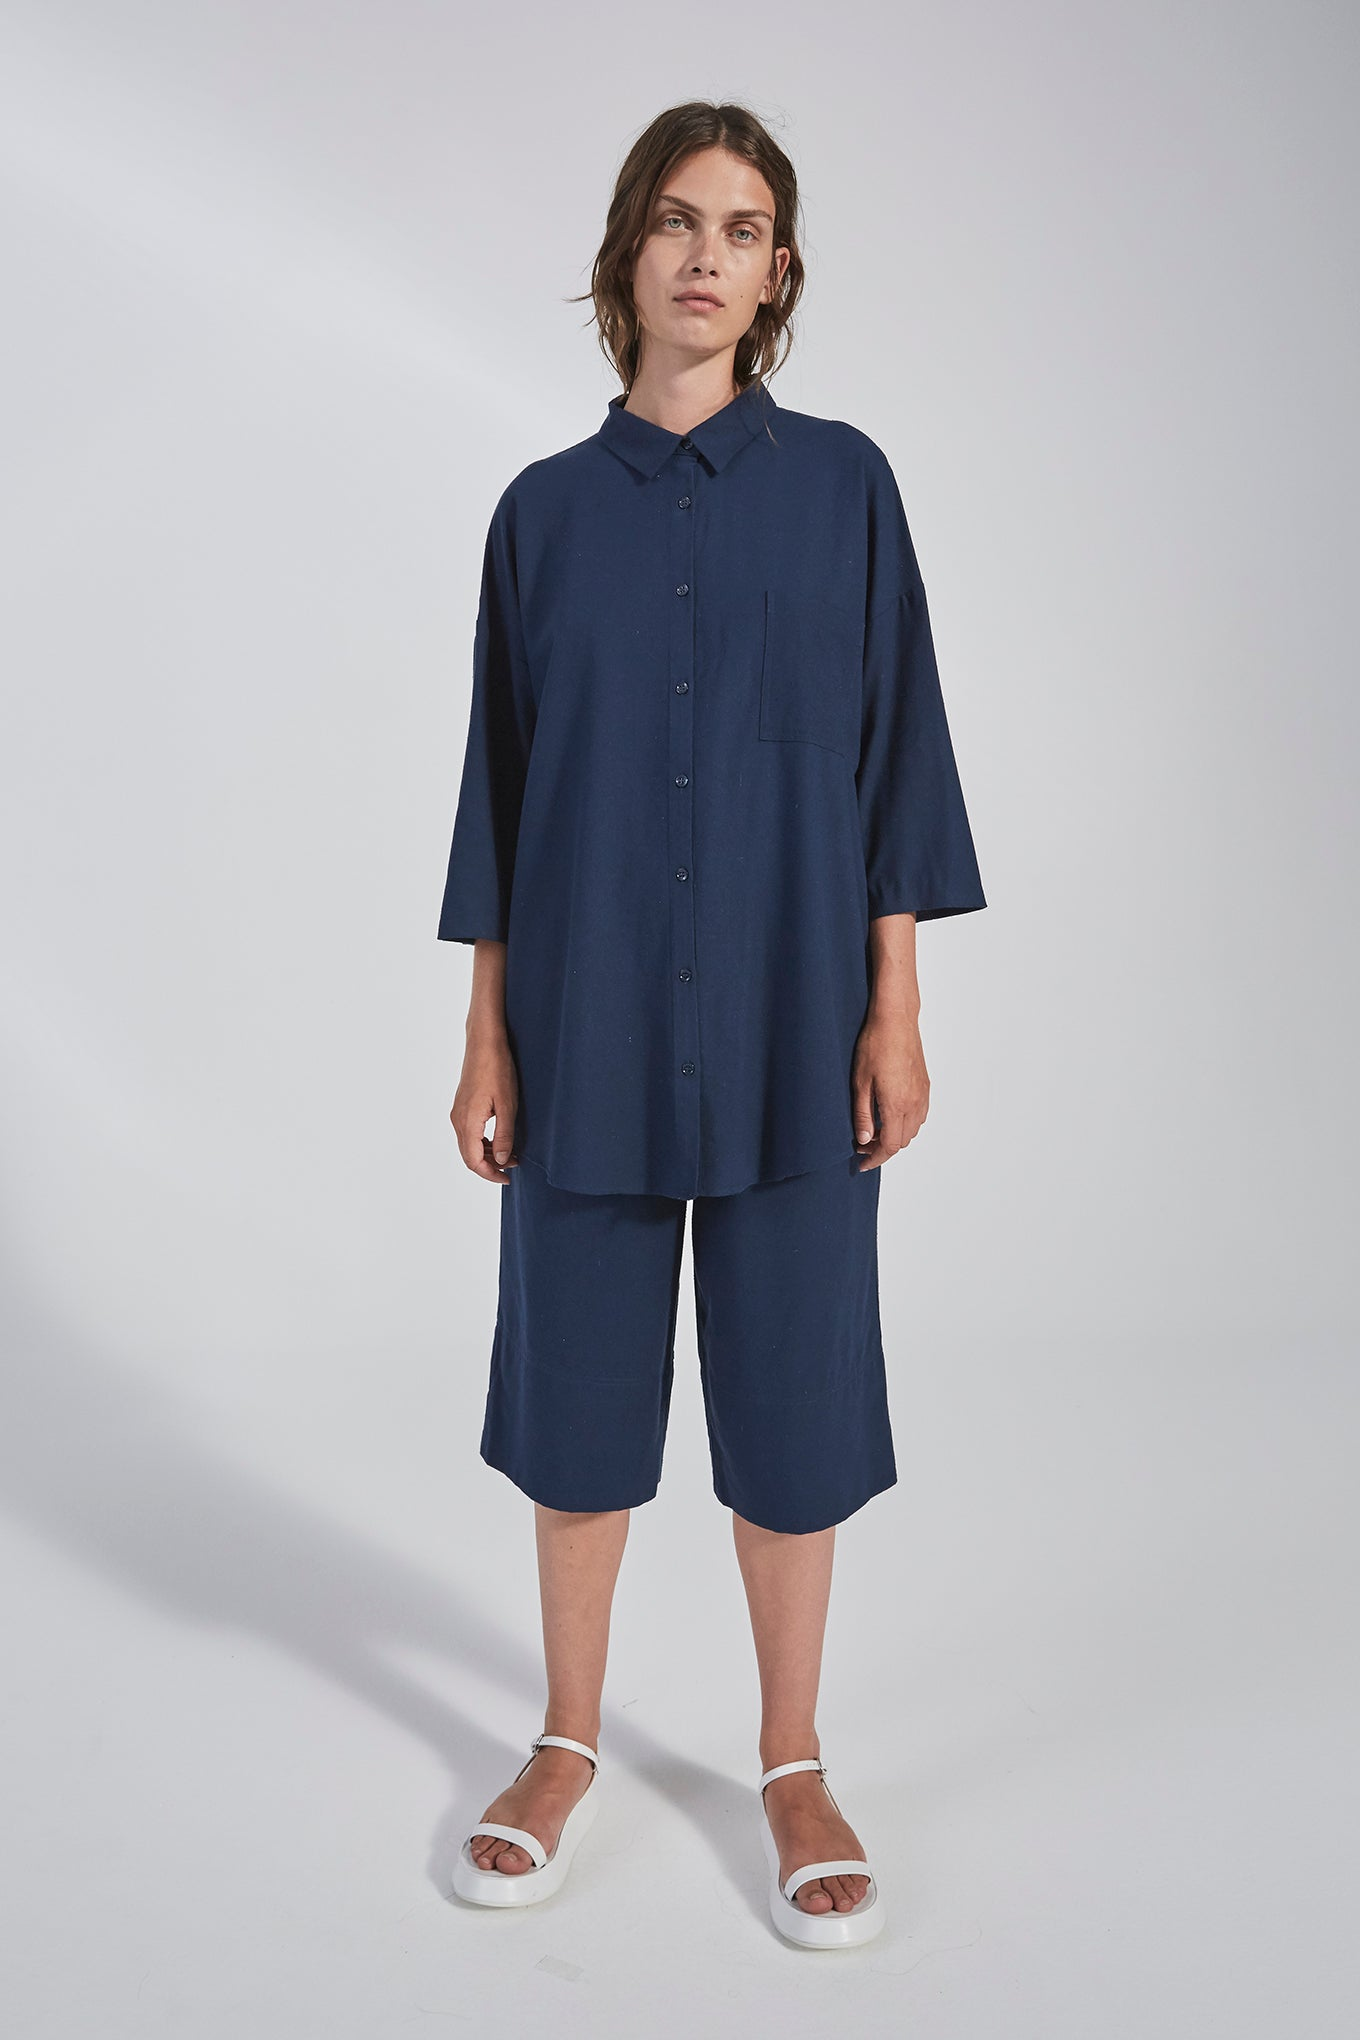 BIANCA SS SHIRT - NAVY - RAW SILK